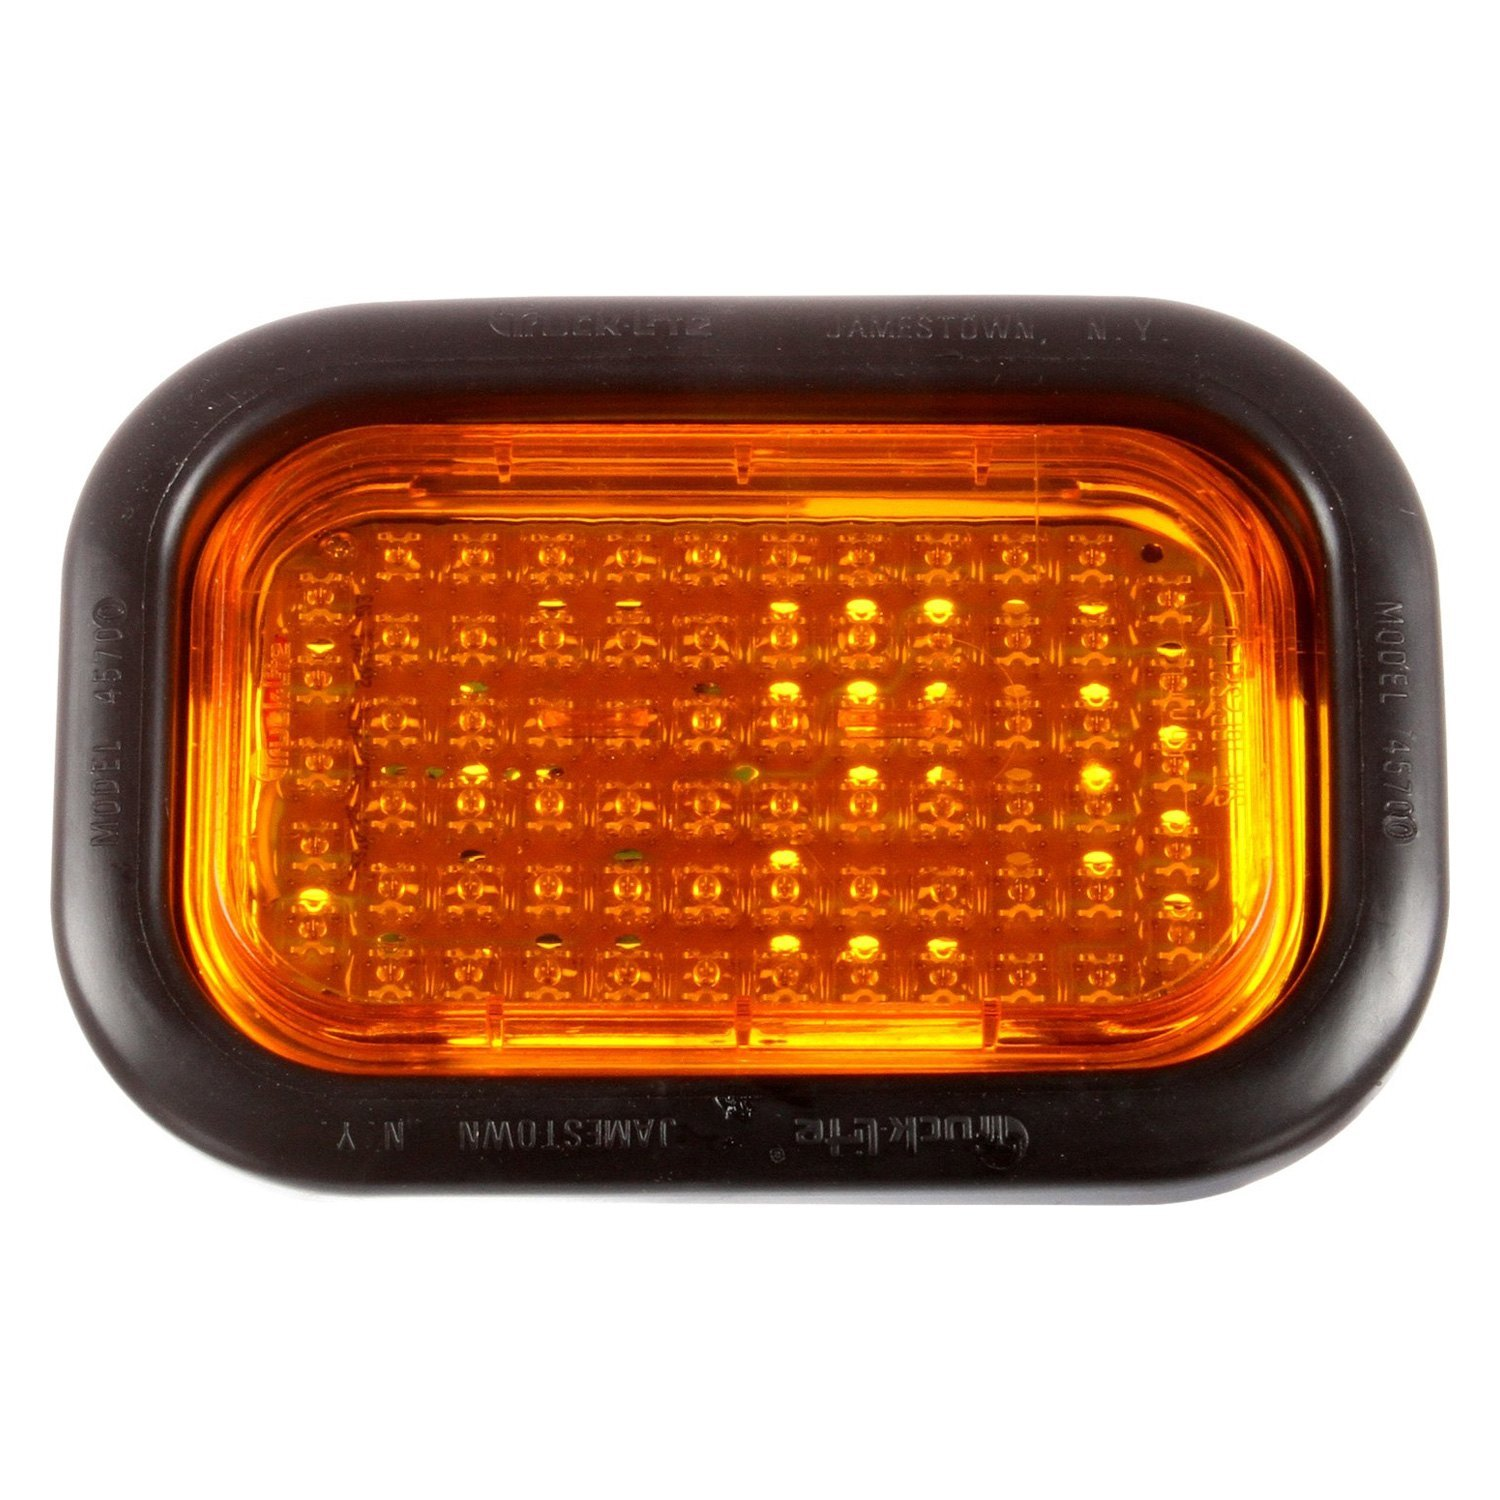 truck lite 45 series led turn signal light. Black Bedroom Furniture Sets. Home Design Ideas